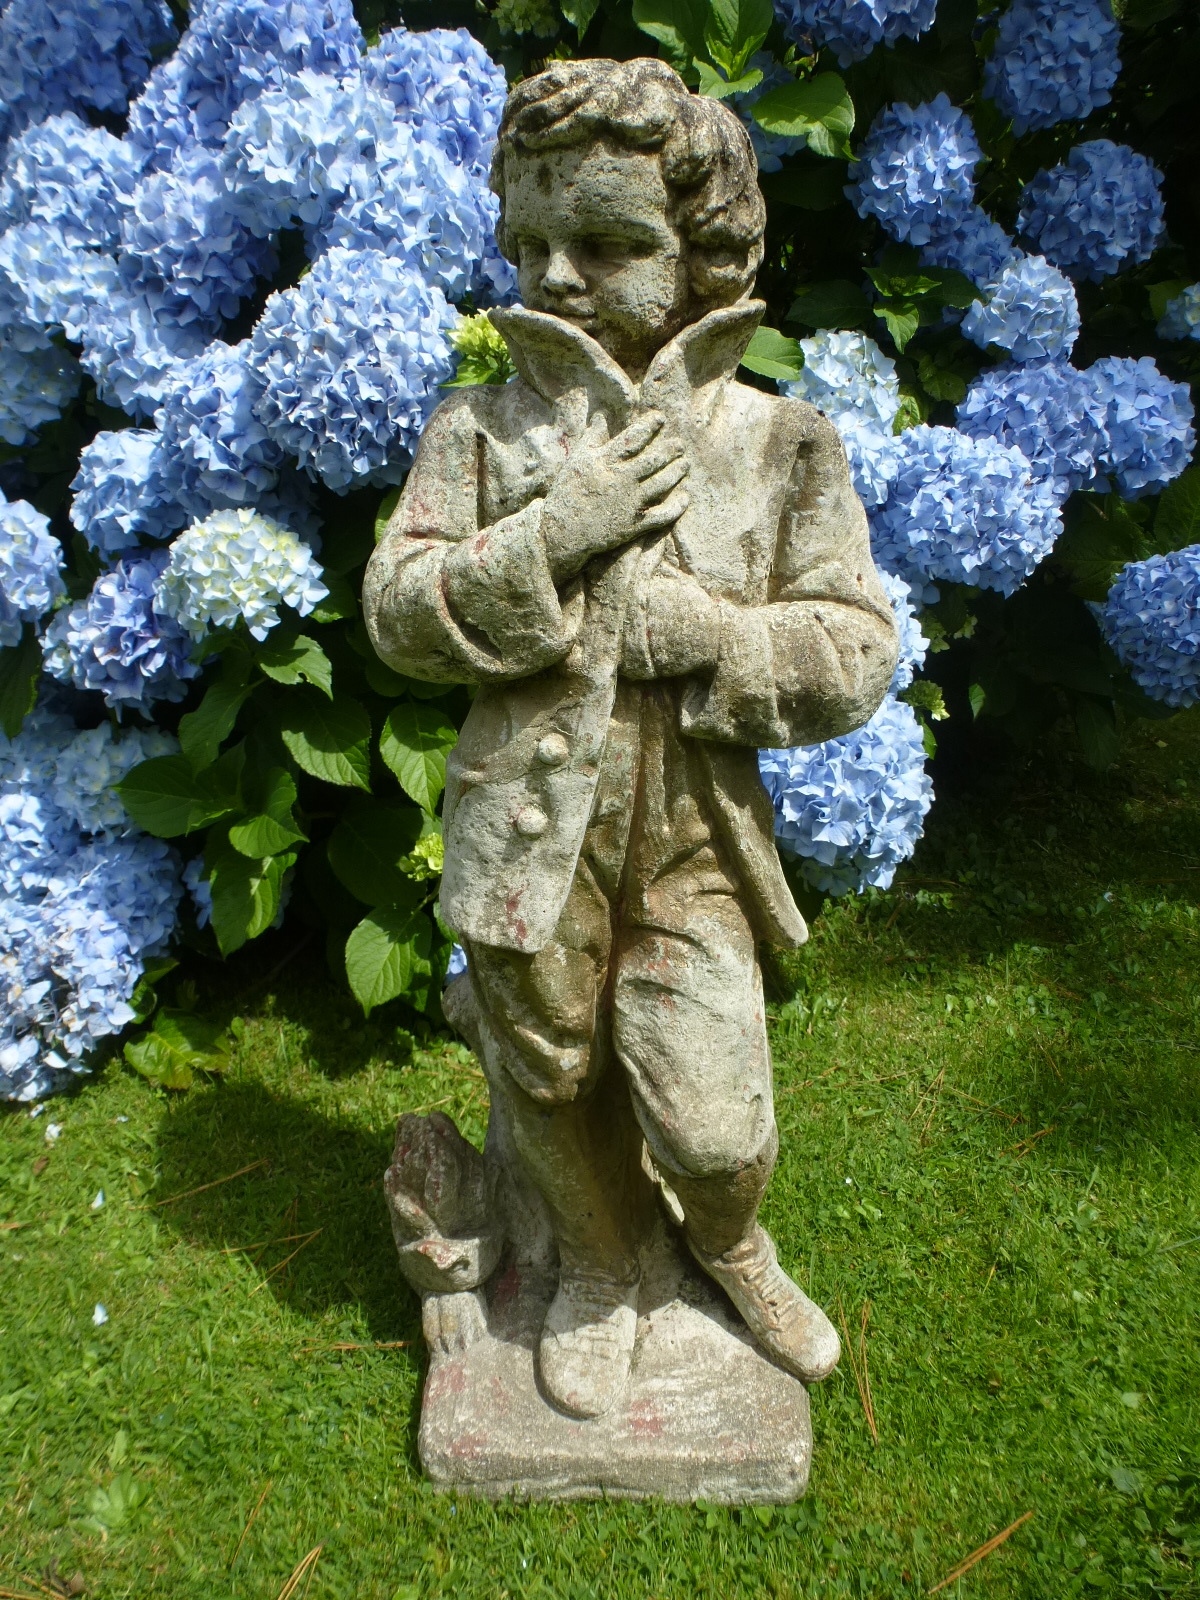 Redruth garden statue ornament boy young man cast stone vintage cornwall used pots